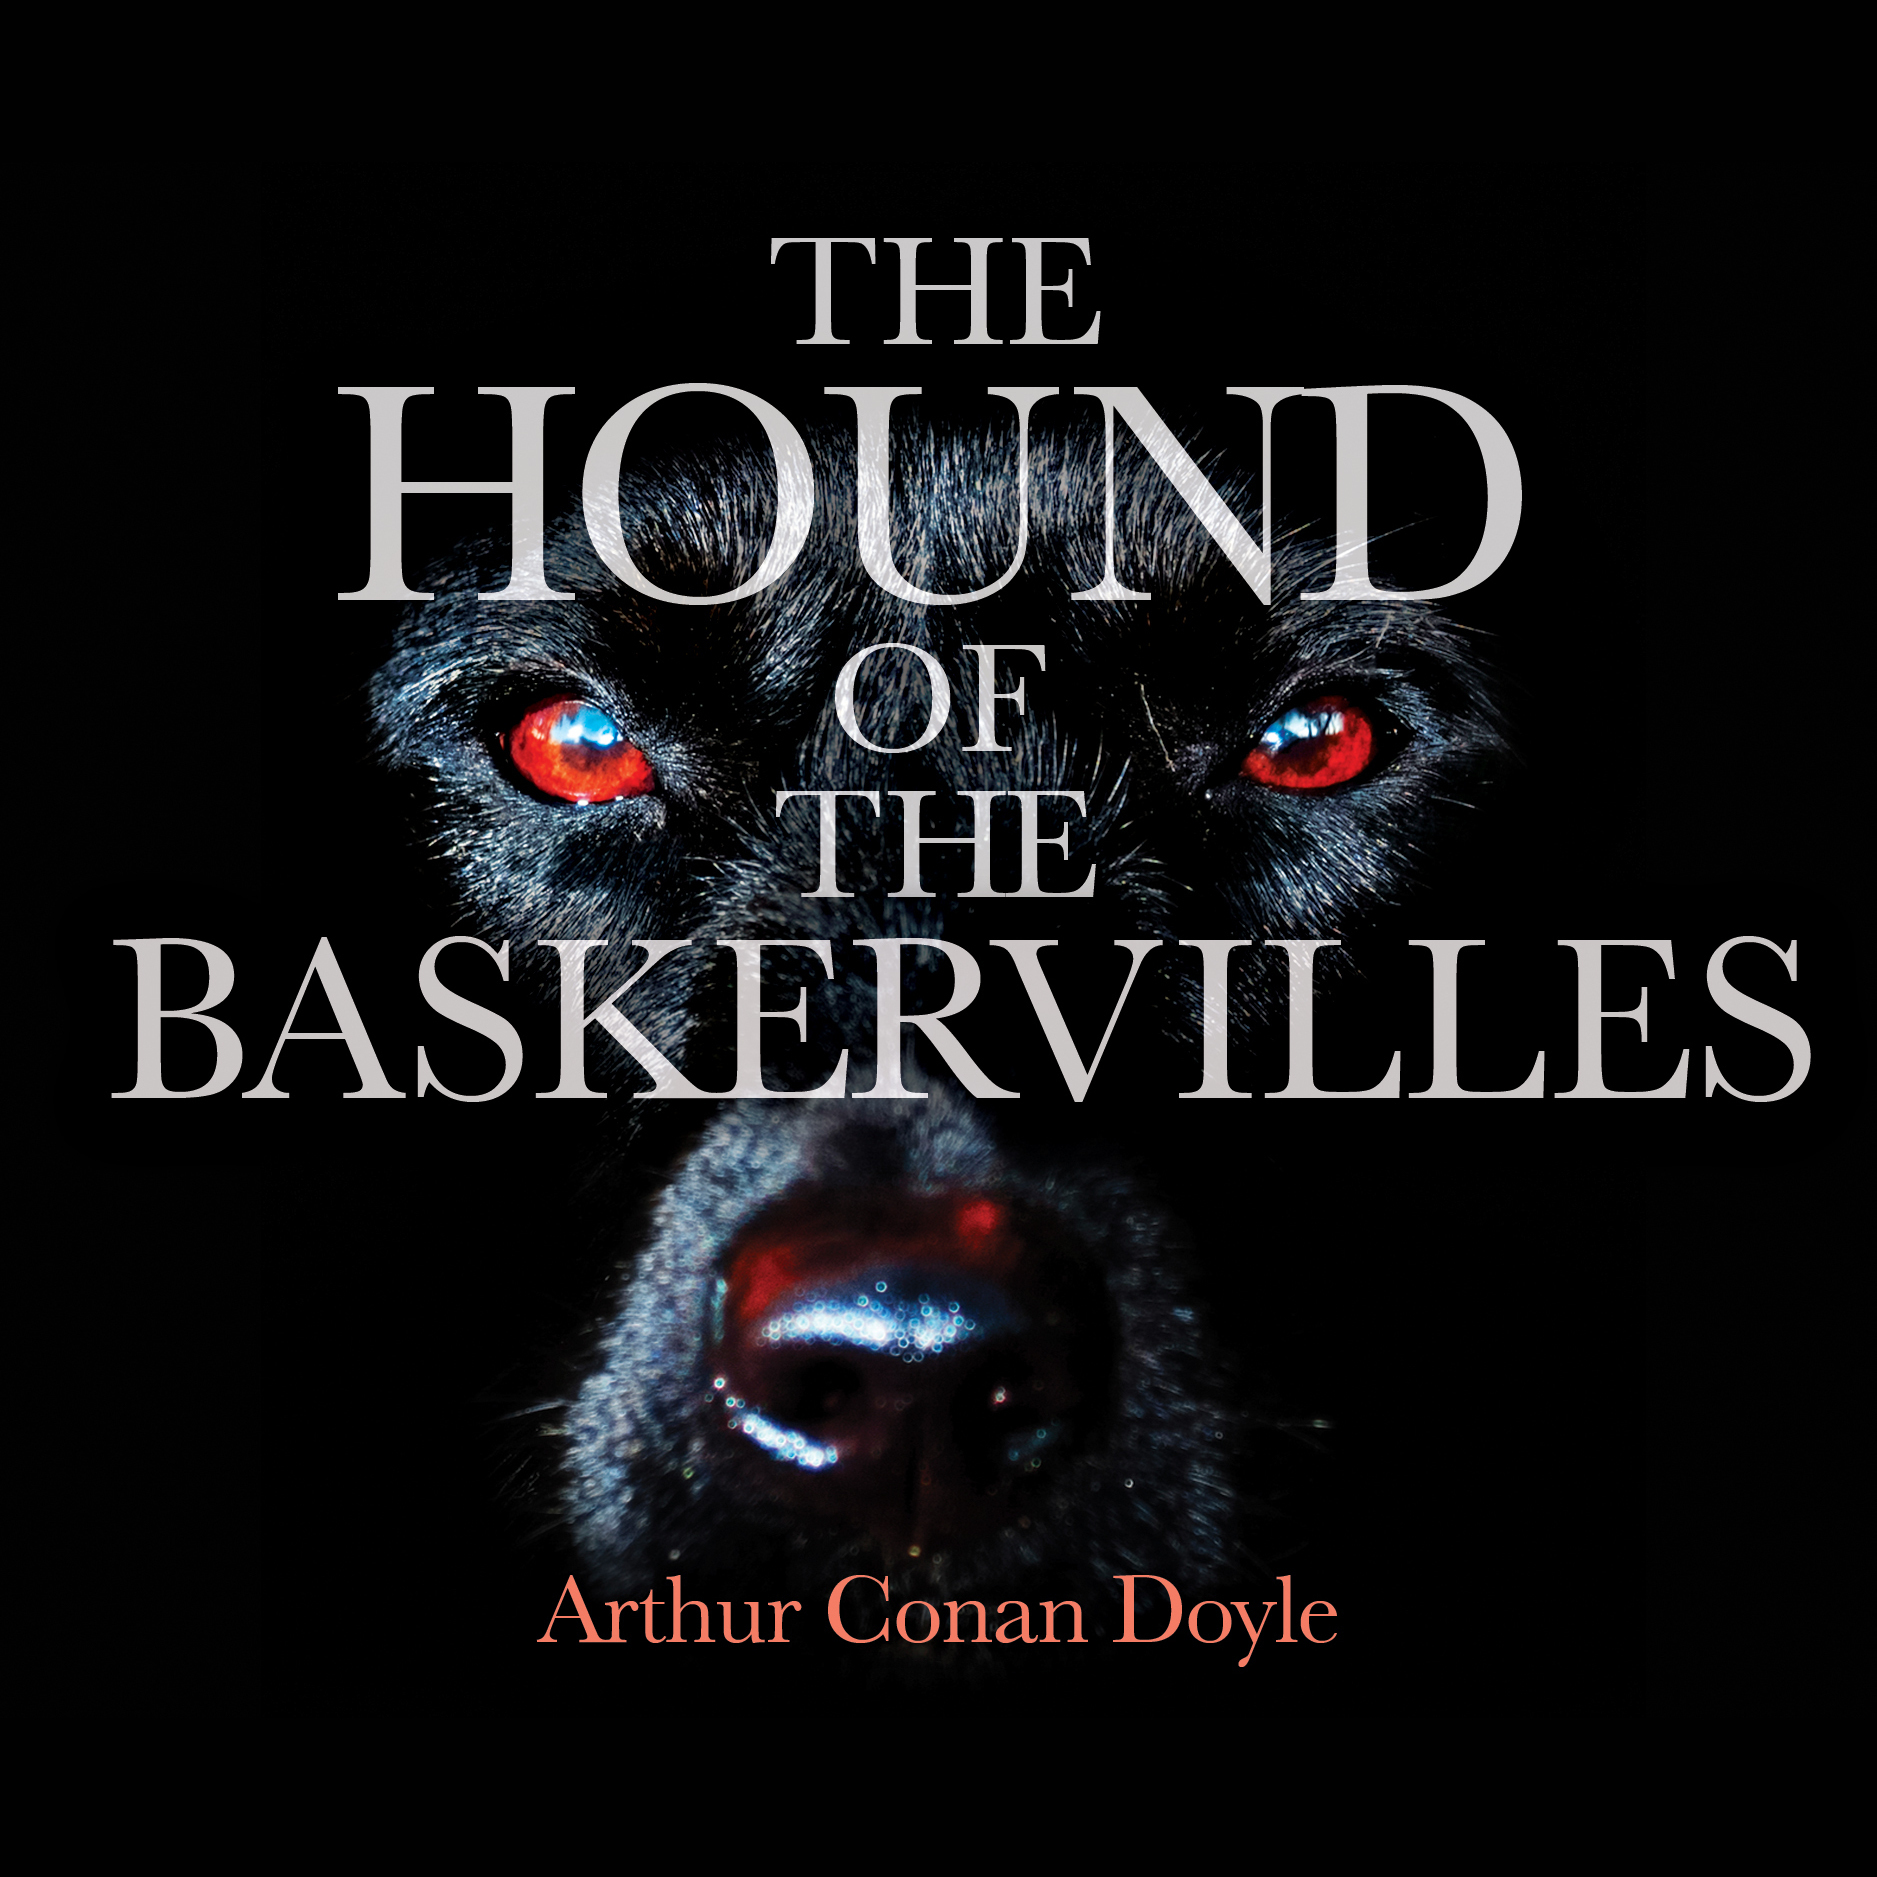 essay on book hound of the baskervilles Free critical analysis of the hound of the baskervilles - book notes/chapter summary/free notes/analysis/online/download-sir arthur conan doyle.